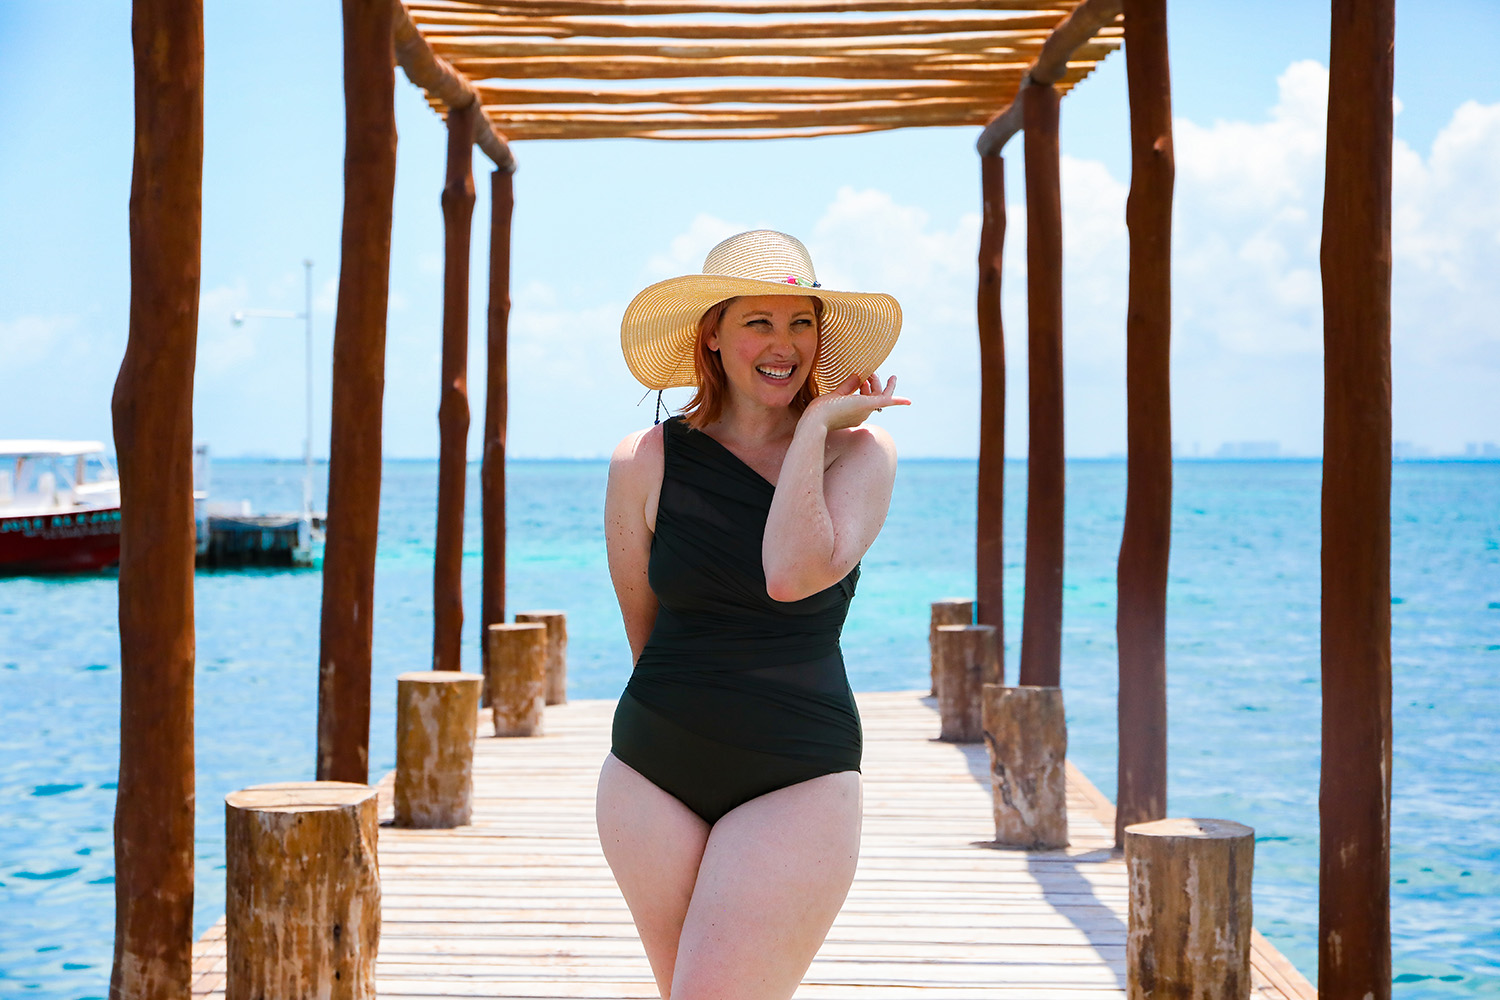 Looking for flattering swimsuits for moms? This one shoulder suit is a great option!